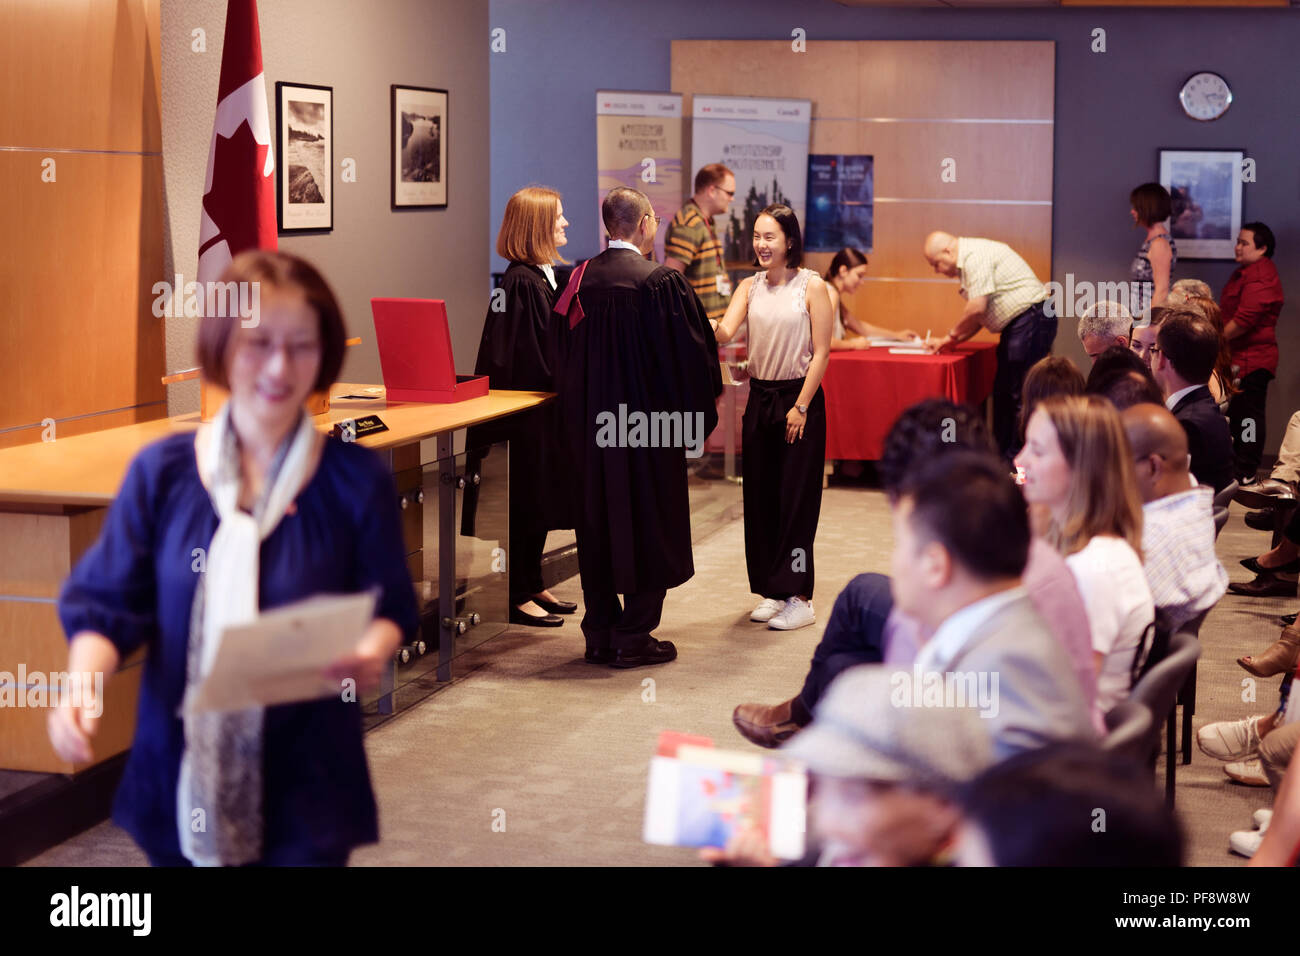 New Canadian citizens receiving their Citizenship certificates at a Citizenship ceremony in Vancouver, British Columbia, Canada 2018 Stock Photo